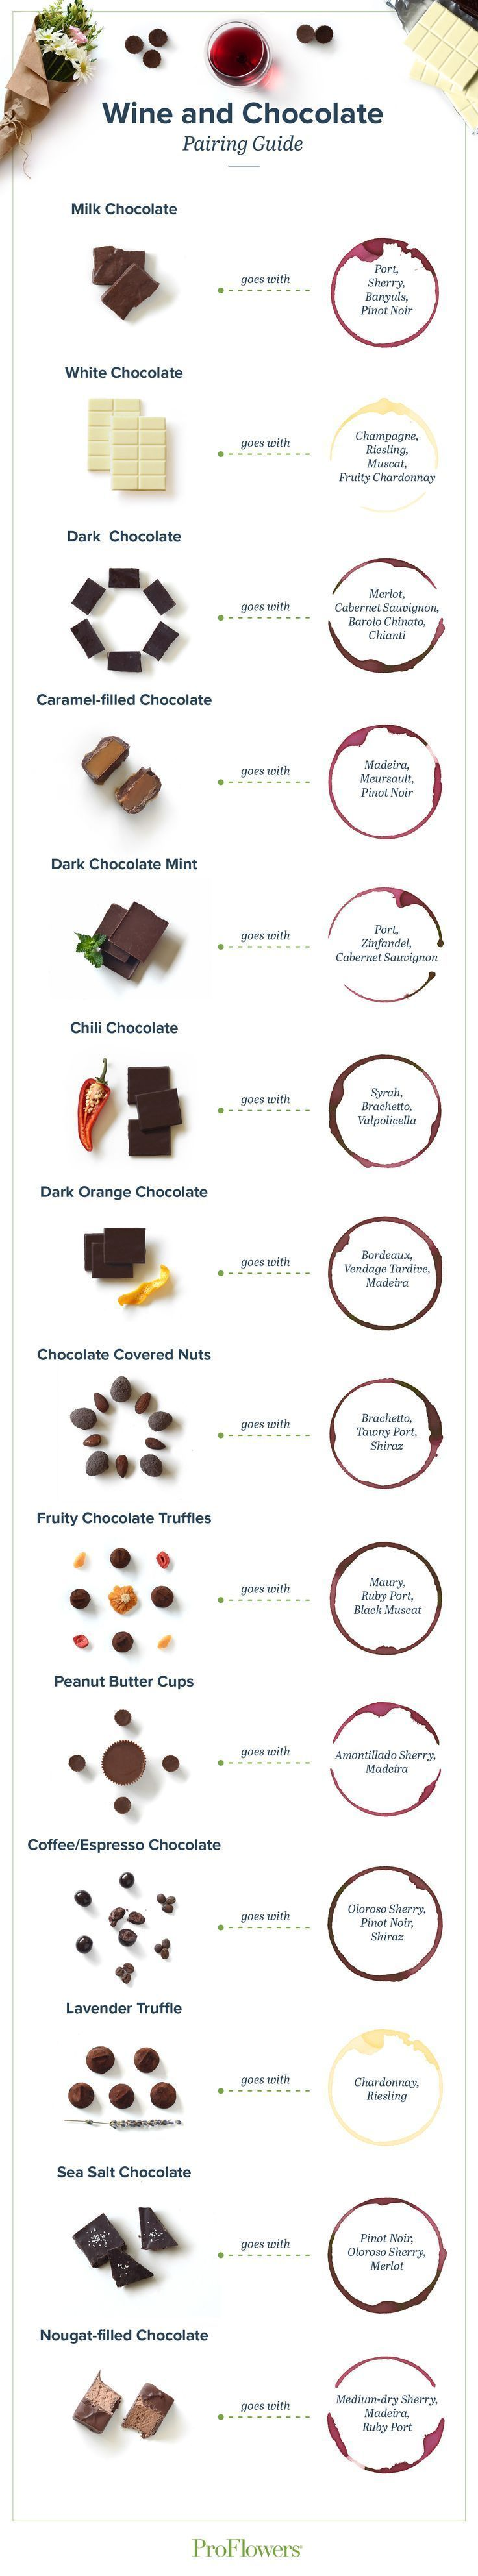 Pairing wine and chocolate can be difficult because of the bold flavors. We came up with a guide to help you highlight the wine as well as the chocolate! #infographic #infografía